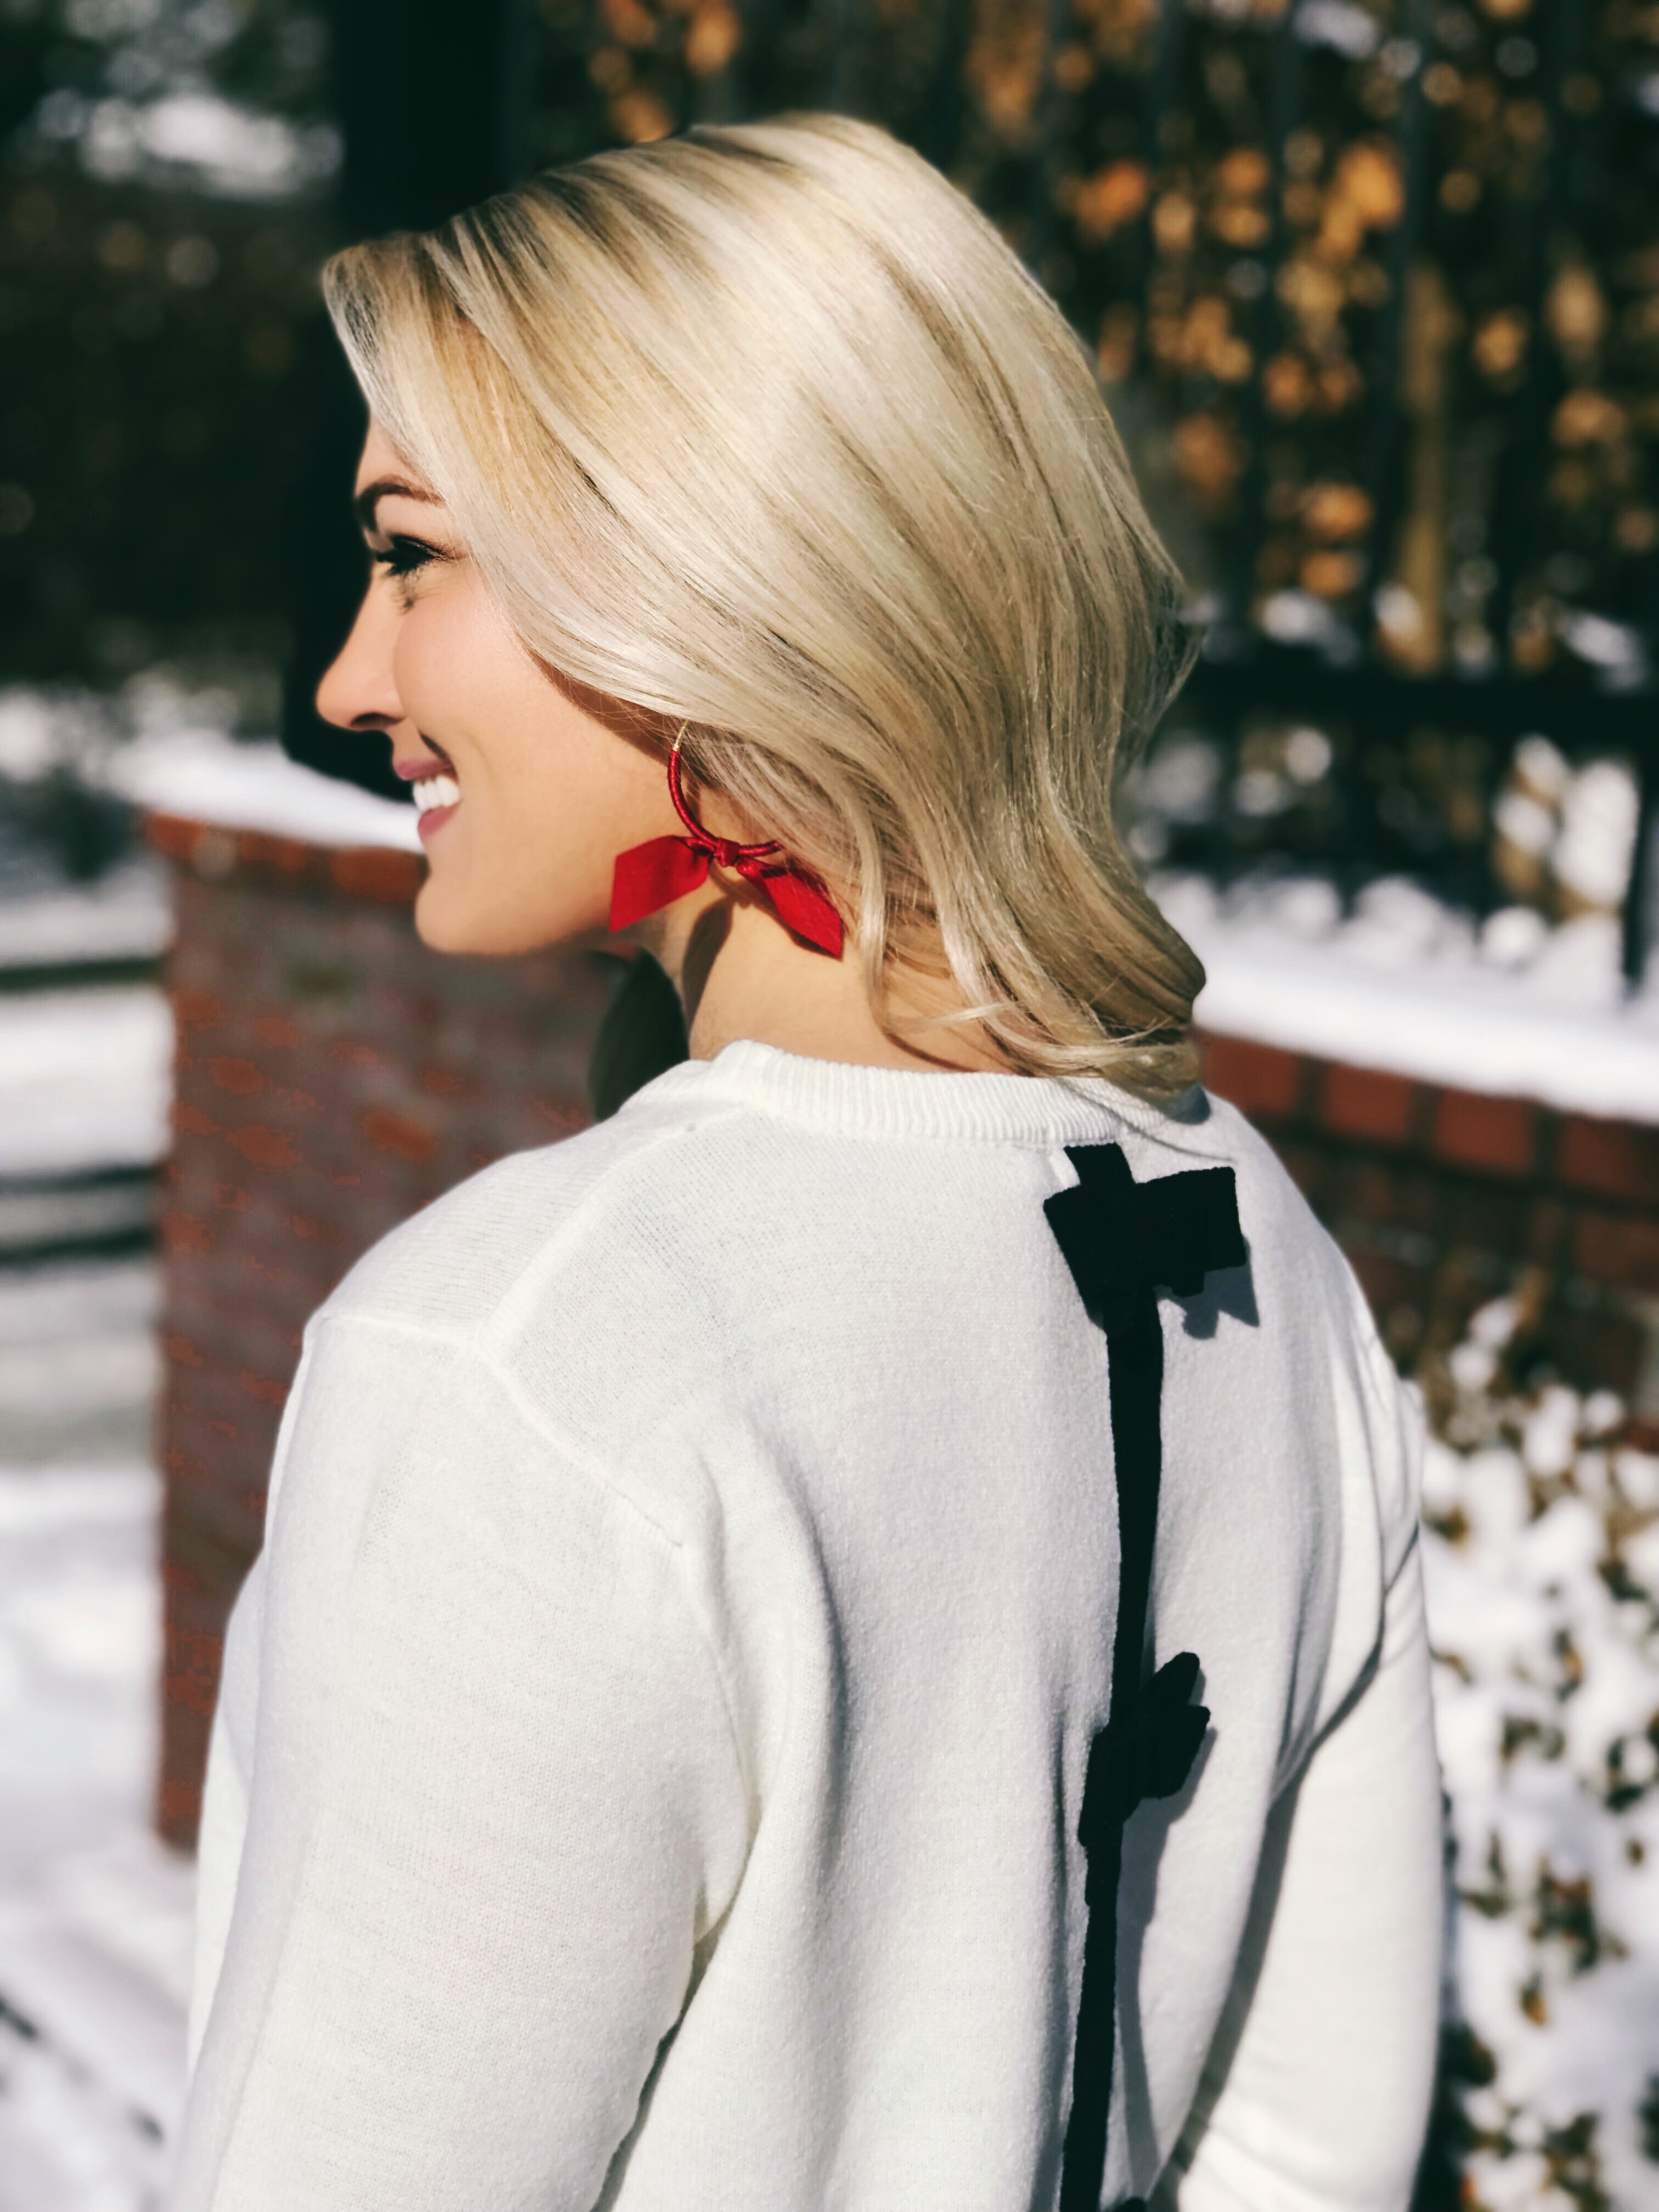 Bow Back Sweater | Bow Earrings | #preppy #classicstyle #fashionblogger